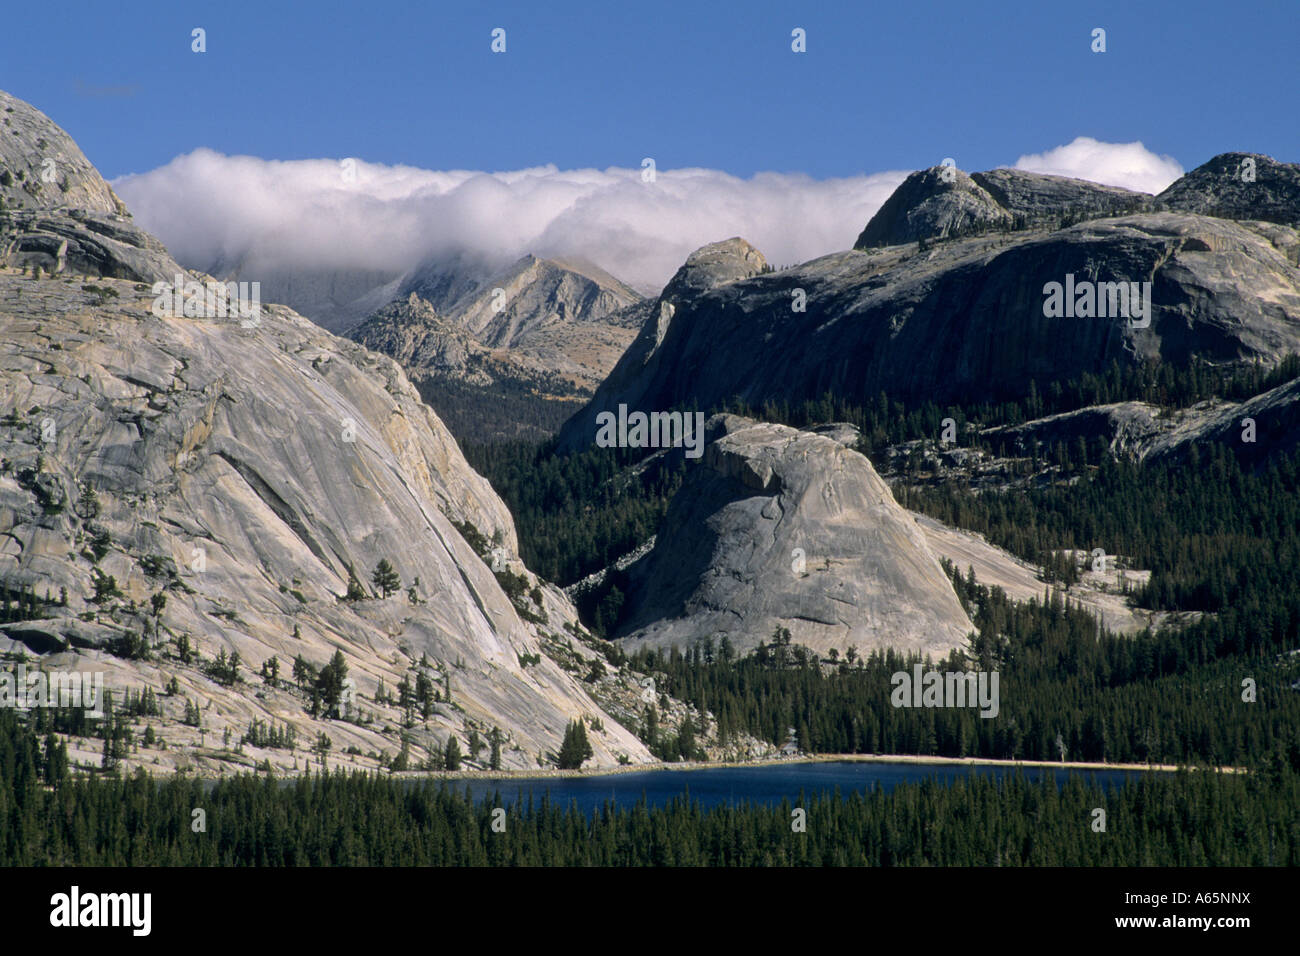 Storm front over the High Sierra crest above Tenaya Lake Tioga Pass Road Yosemite Nat l Park CALIFORNIA Stock Photo